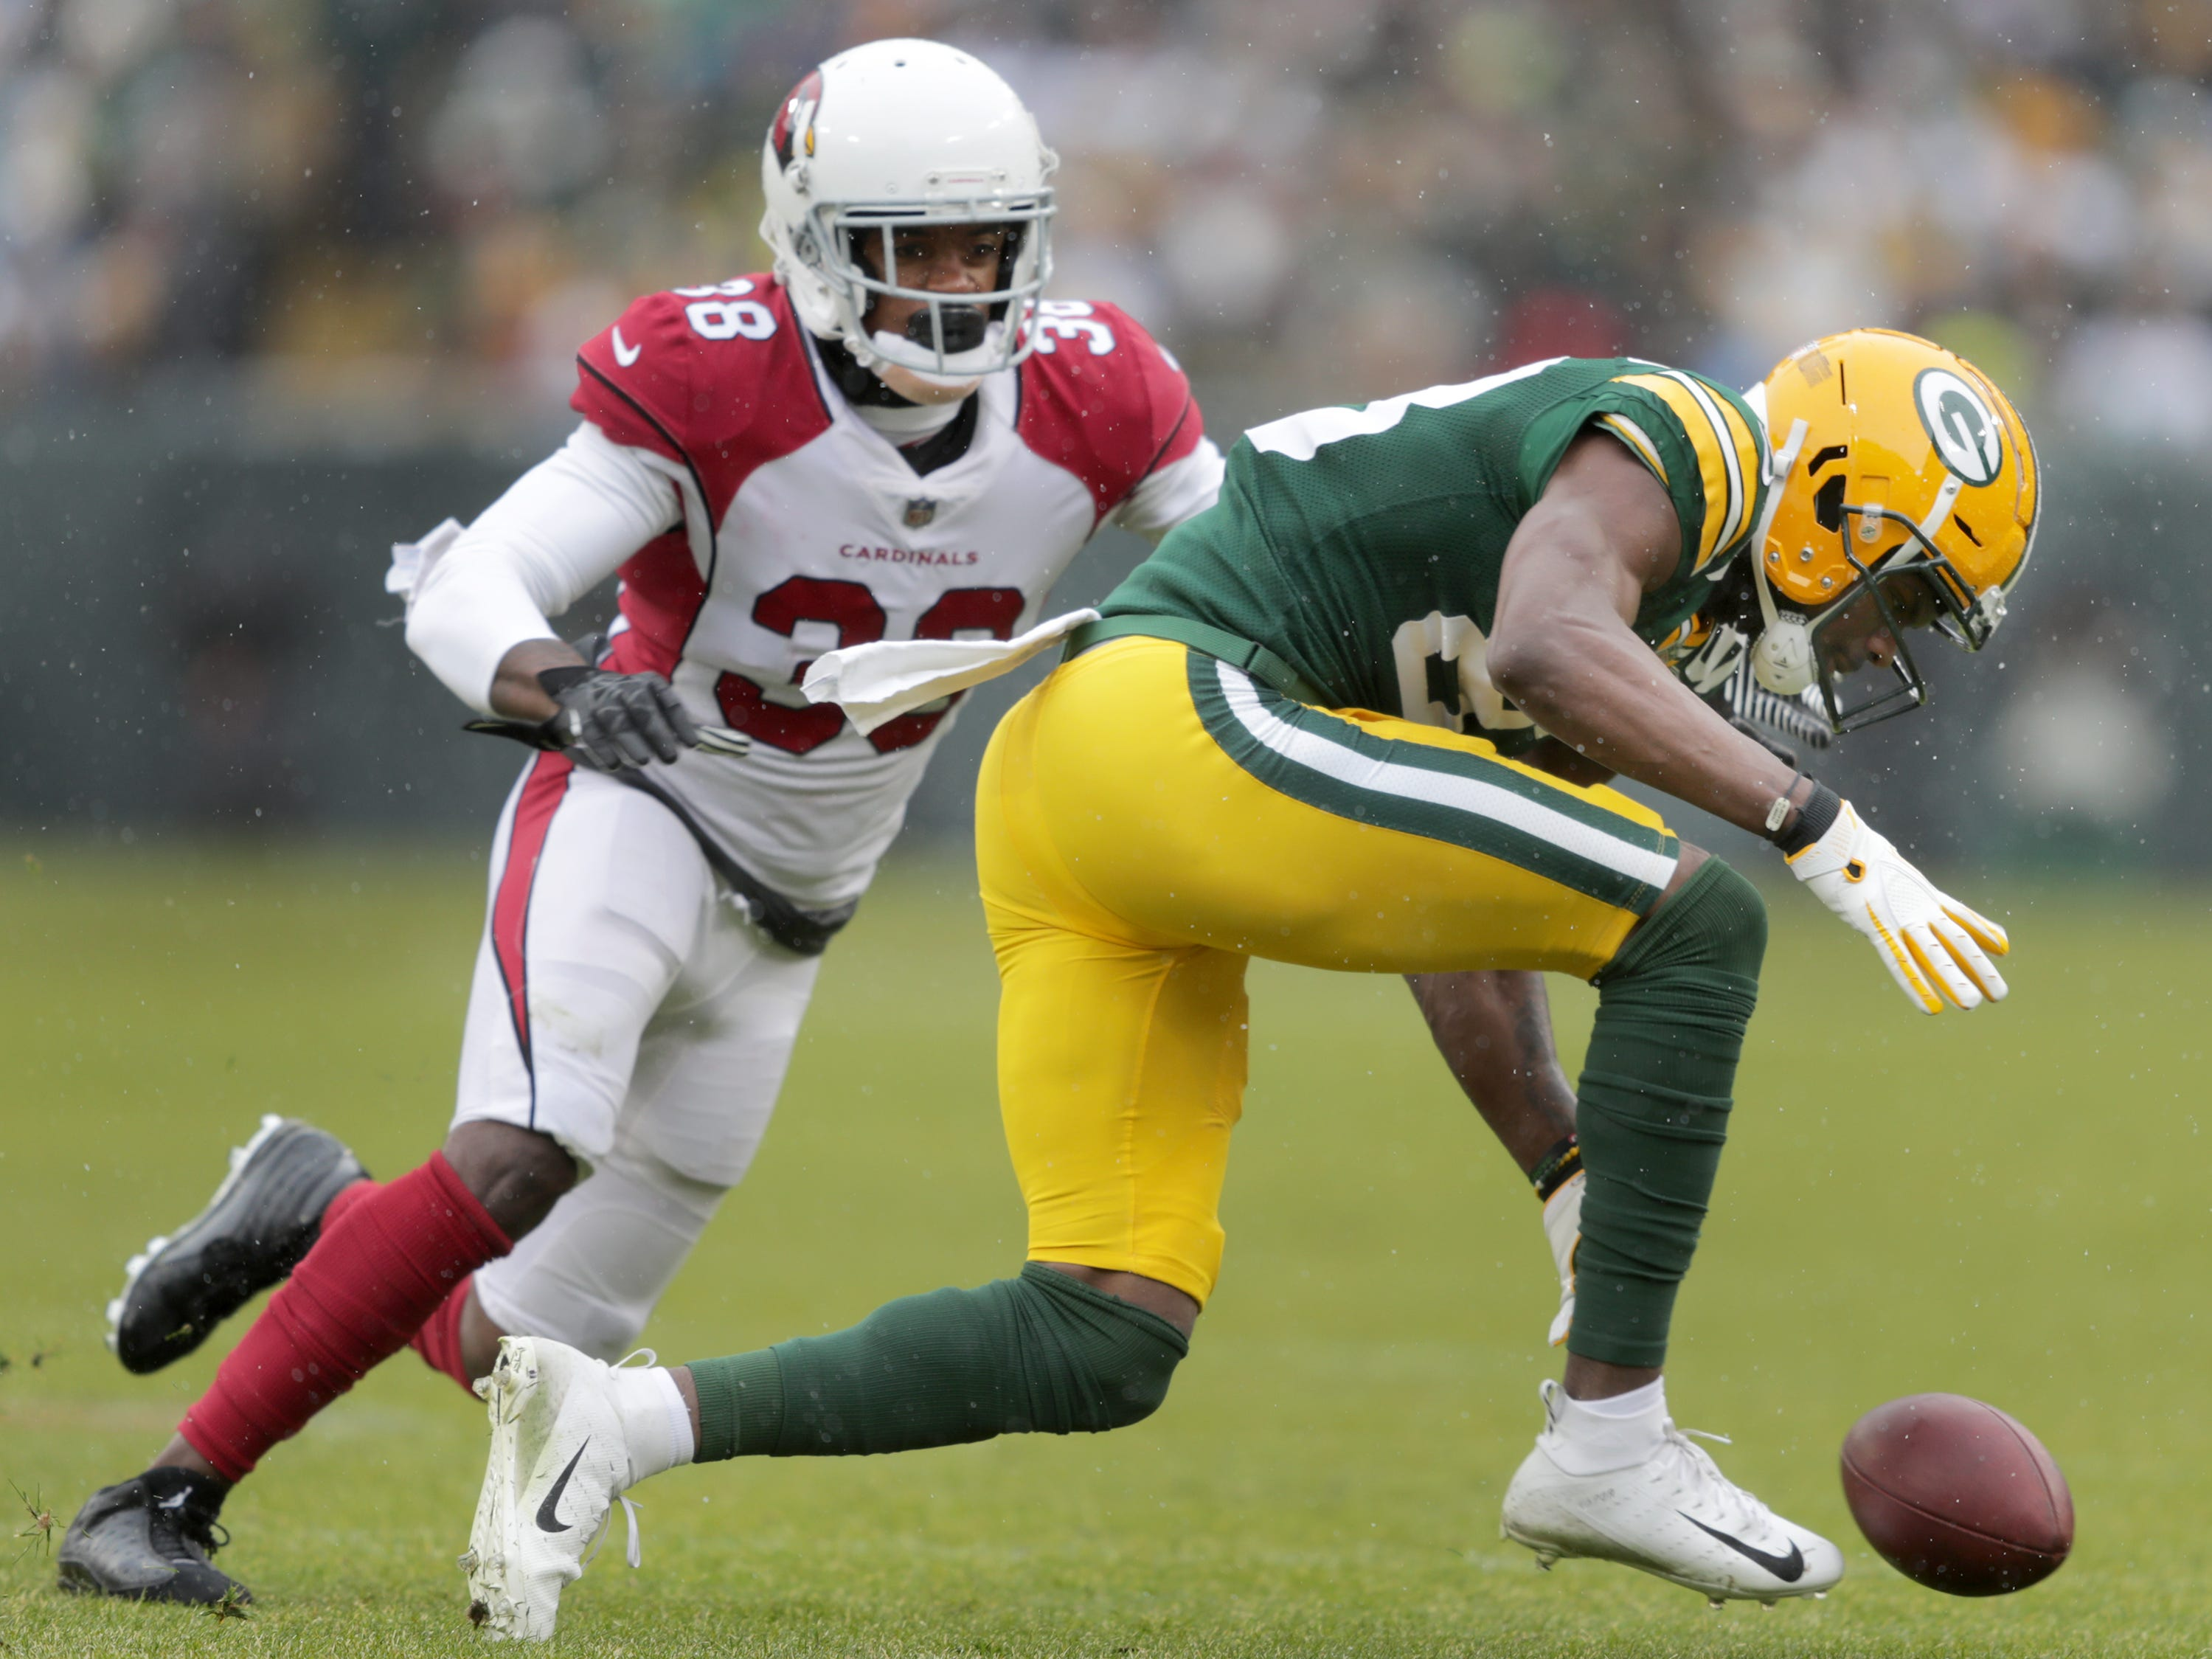 Green Bay Packers wide receiver Marquez Valdes-Scantling agfainst Arizona Cardinals defensive back David Amerson during their football game on Sunday, December 2, 2018, at Lambeau Field in Green Bay, Wis. Wm. Glasheen/USA TODAY NETWORK-Wisconsin.